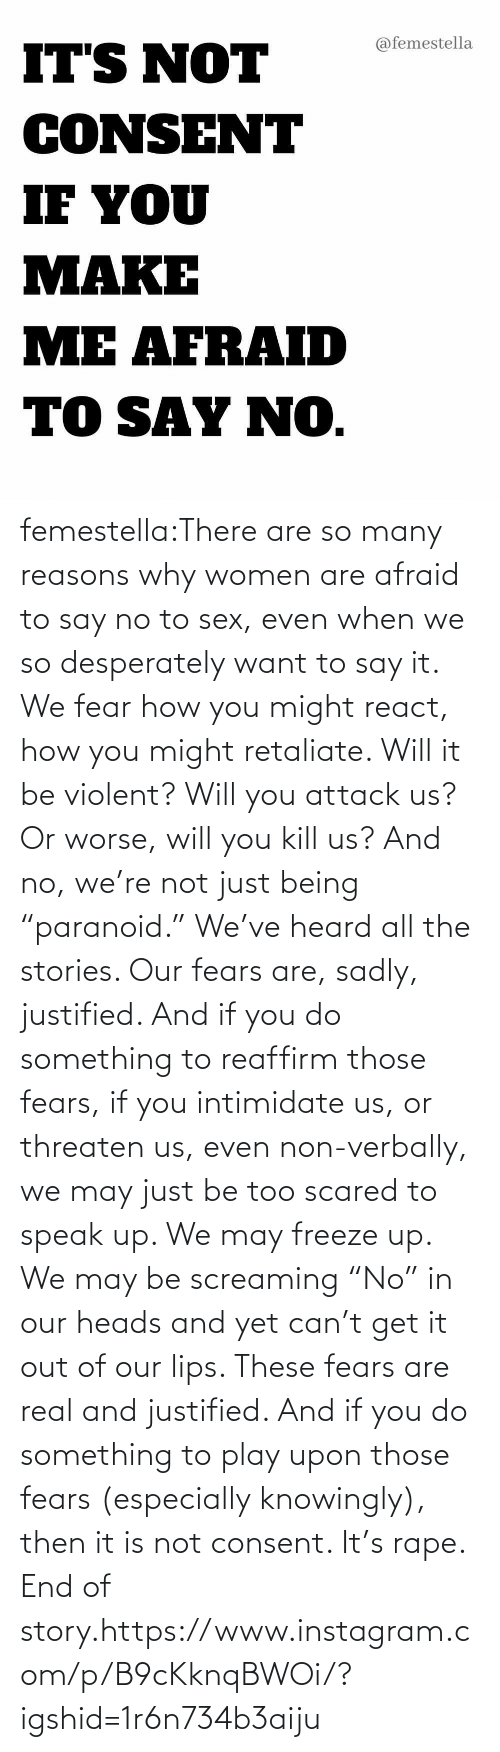 "attack: femestella:There are so many reasons why women are afraid to say no to sex, even when we so desperately want to say it. We fear how you might react, how you might retaliate. Will it be violent? Will you attack us? Or worse, will you kill us? And no, we're not just being ""paranoid."" We've heard all the stories. Our fears are, sadly, justified. And if you do something to reaffirm those fears, if you intimidate us, or threaten us, even non-verbally, we may just be too scared to speak up. We may freeze up. We may be screaming ""No"" in our heads and yet can't get it out of our lips. These fears are real and justified. And if you do something to play upon those fears (especially knowingly), then it is not consent. It's rape. End of story.https://www.instagram.com/p/B9cKknqBWOi/?igshid=1r6n734b3aiju"